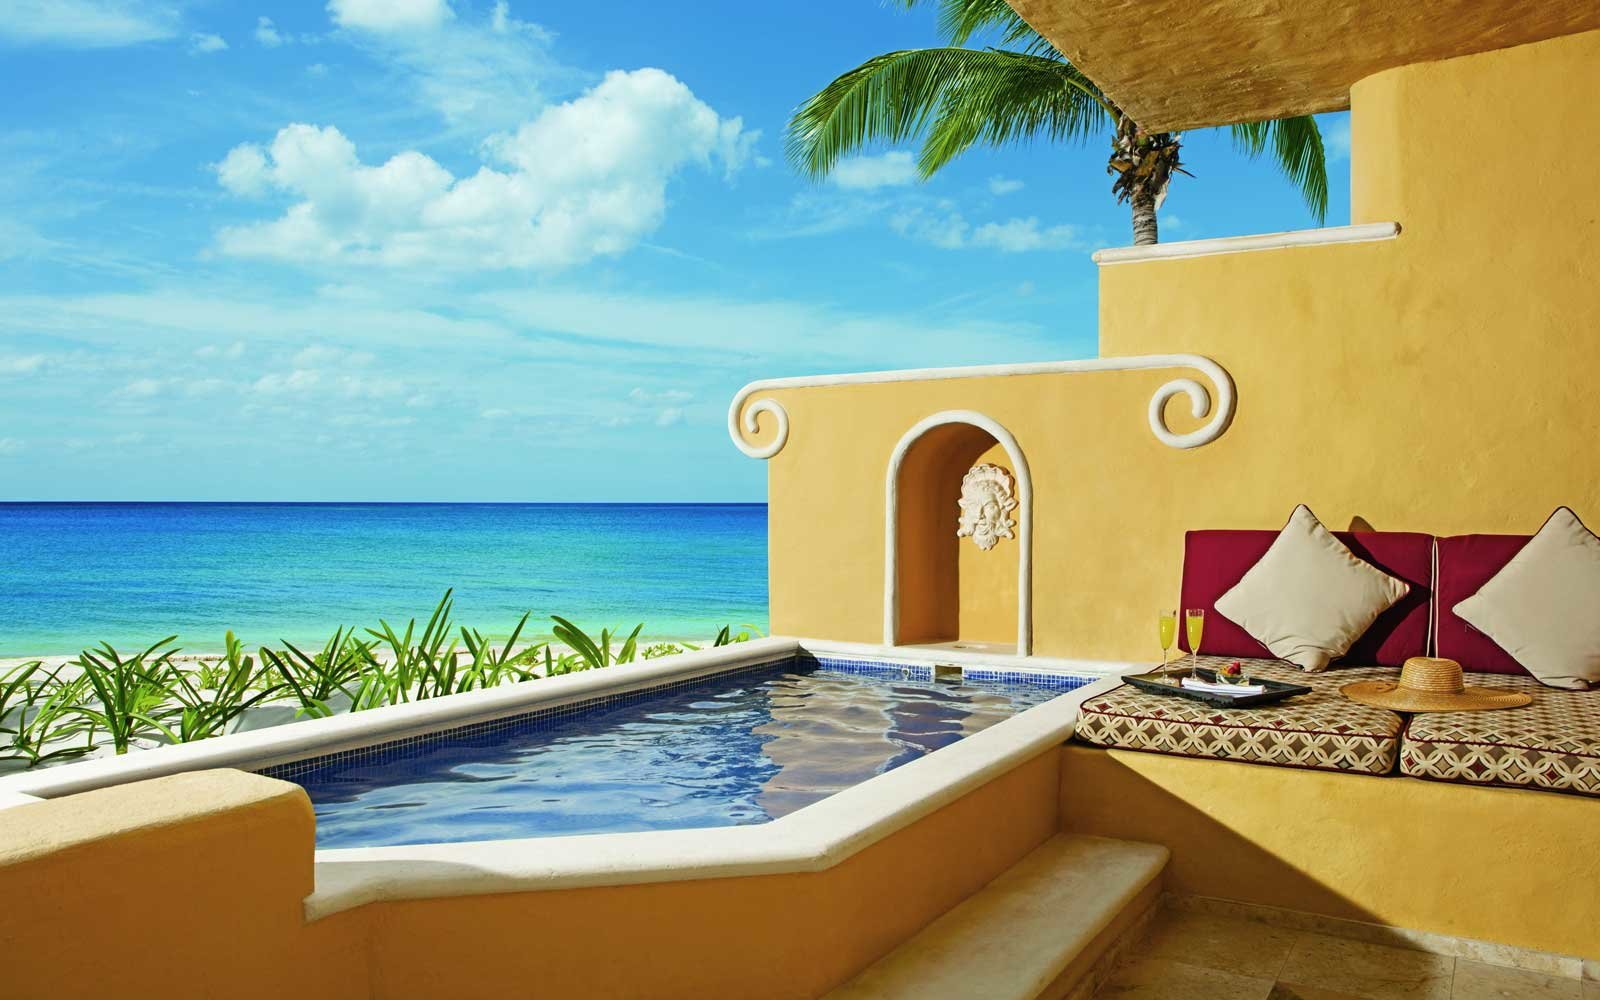 Top Romantic Hotels: Zoetry Paraiso, Mexico